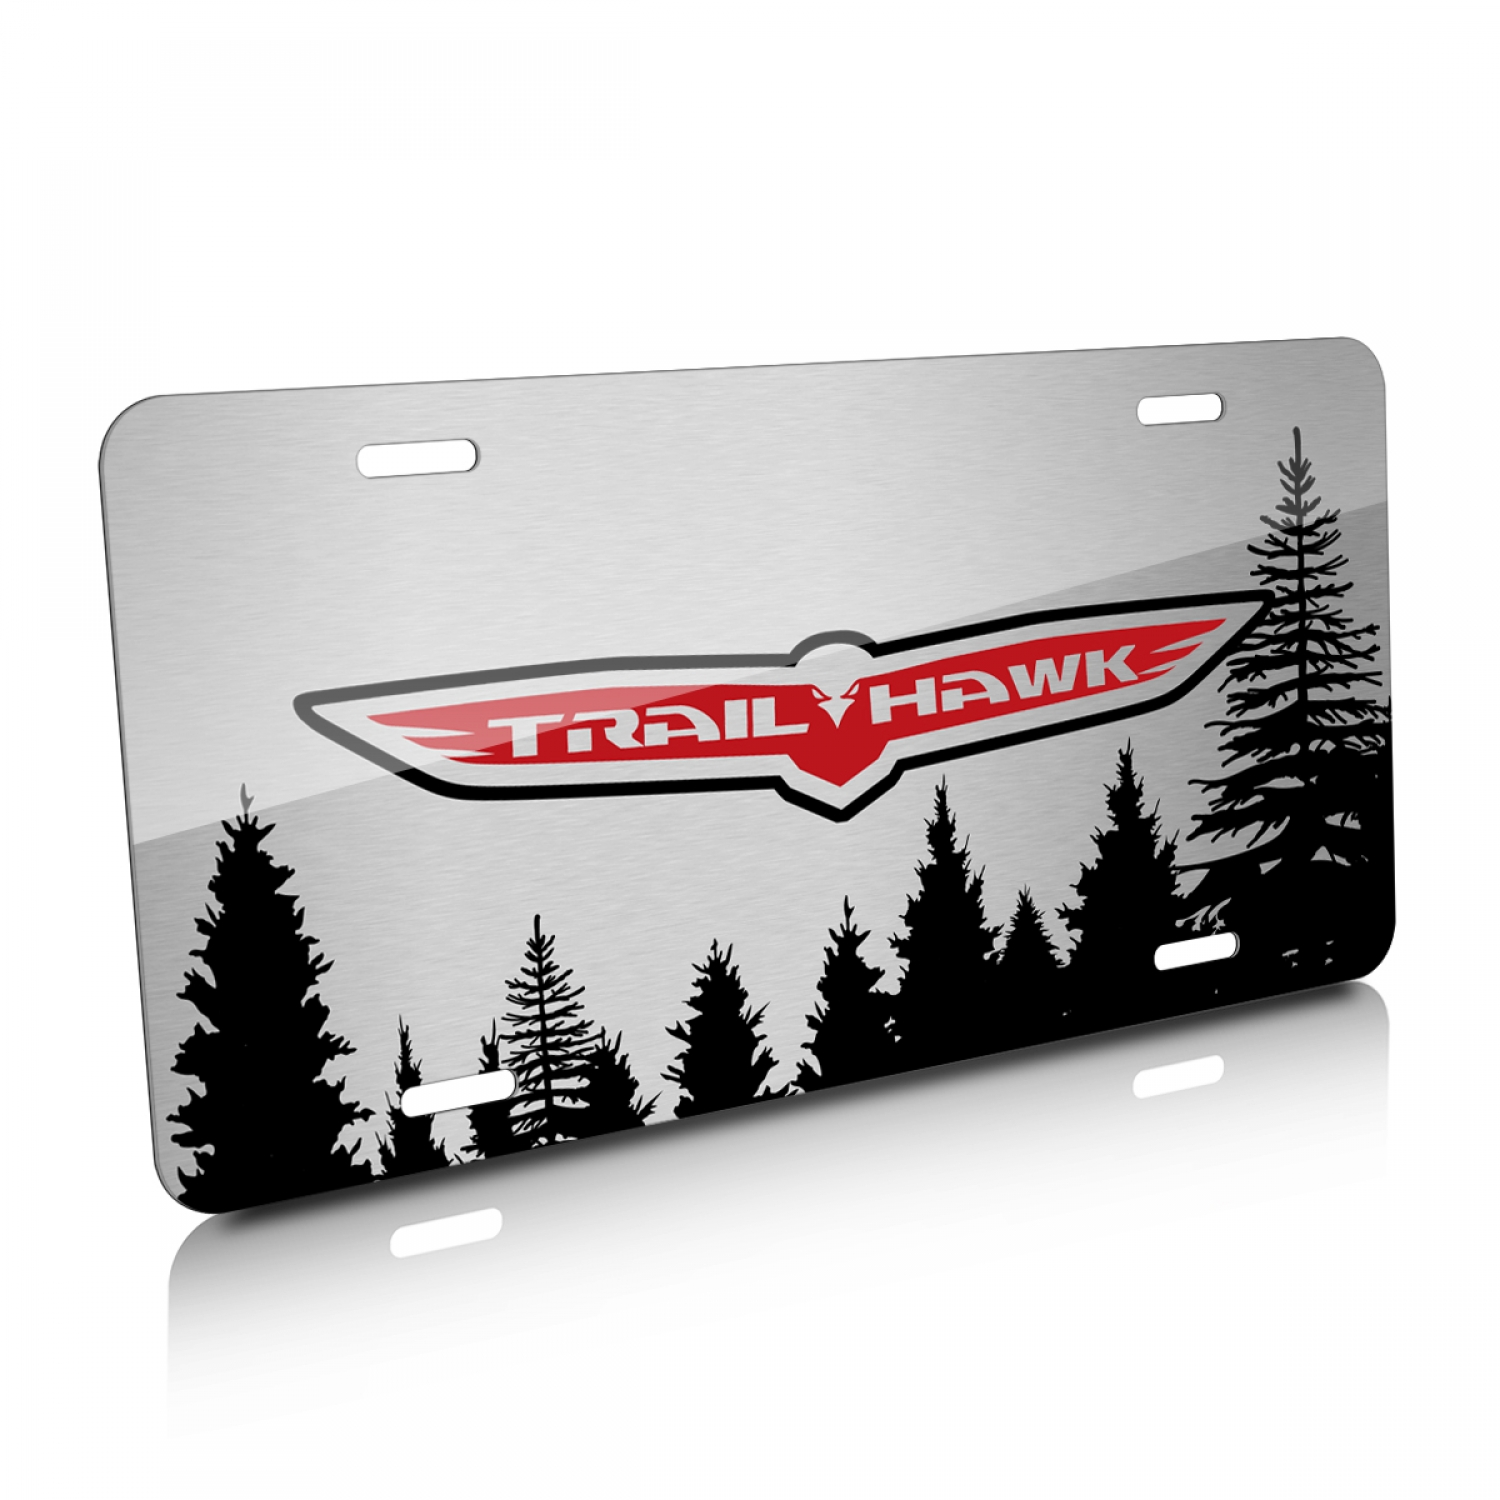 Jeep Trailhawk Forrest Sillhouette Graphic Brush Aluminum License Plate